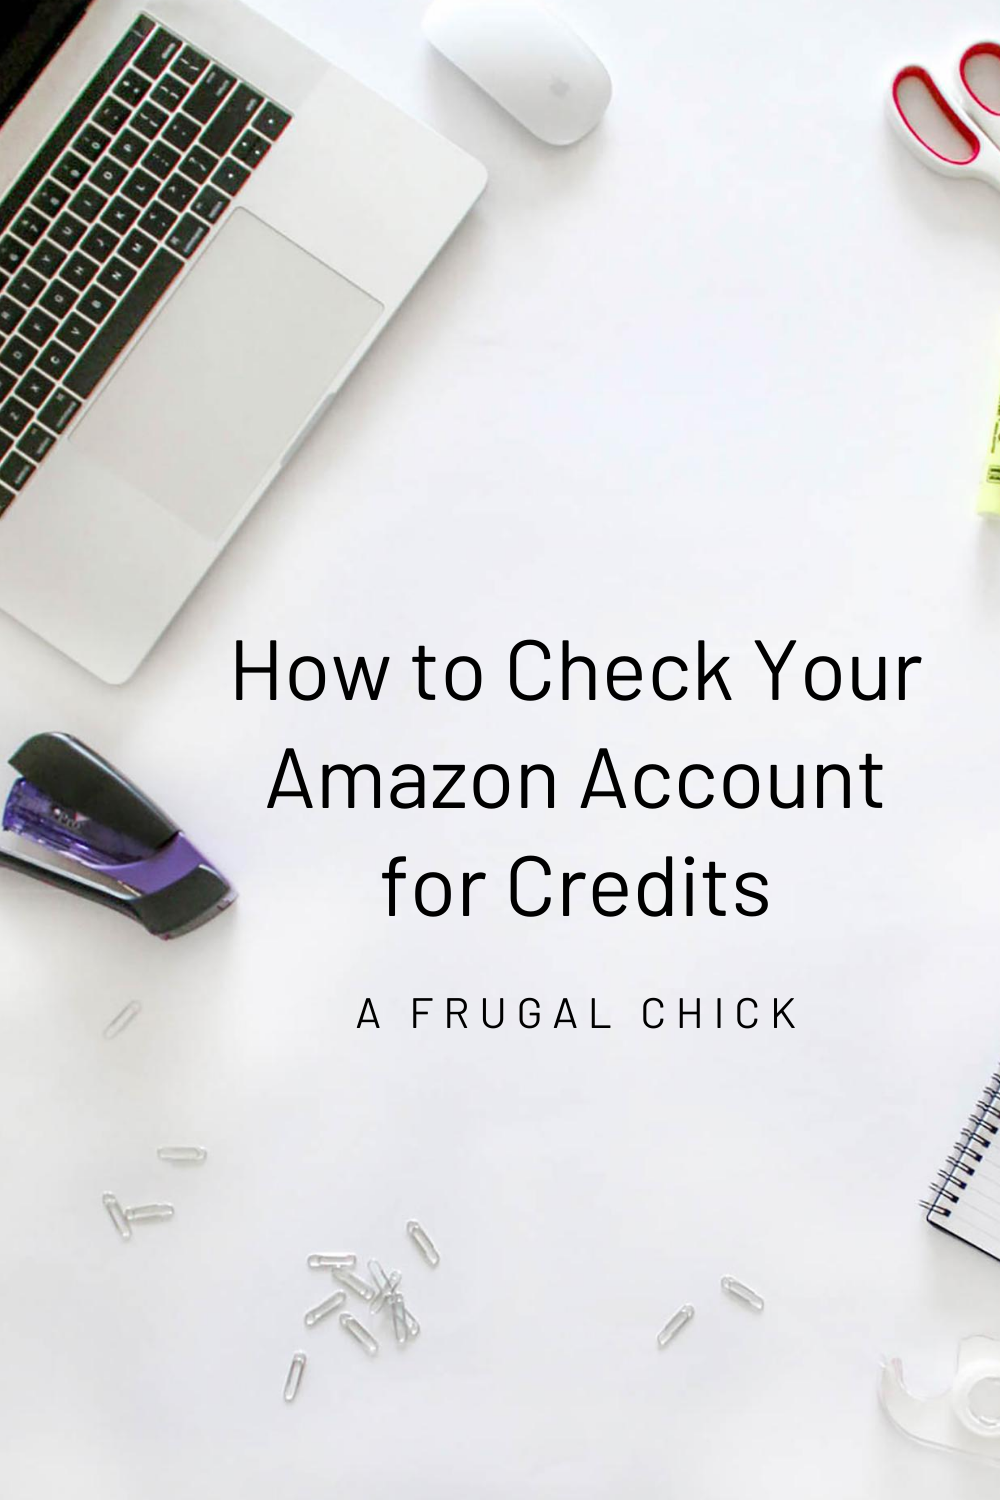 How to Check Your Amazon Account for Credits